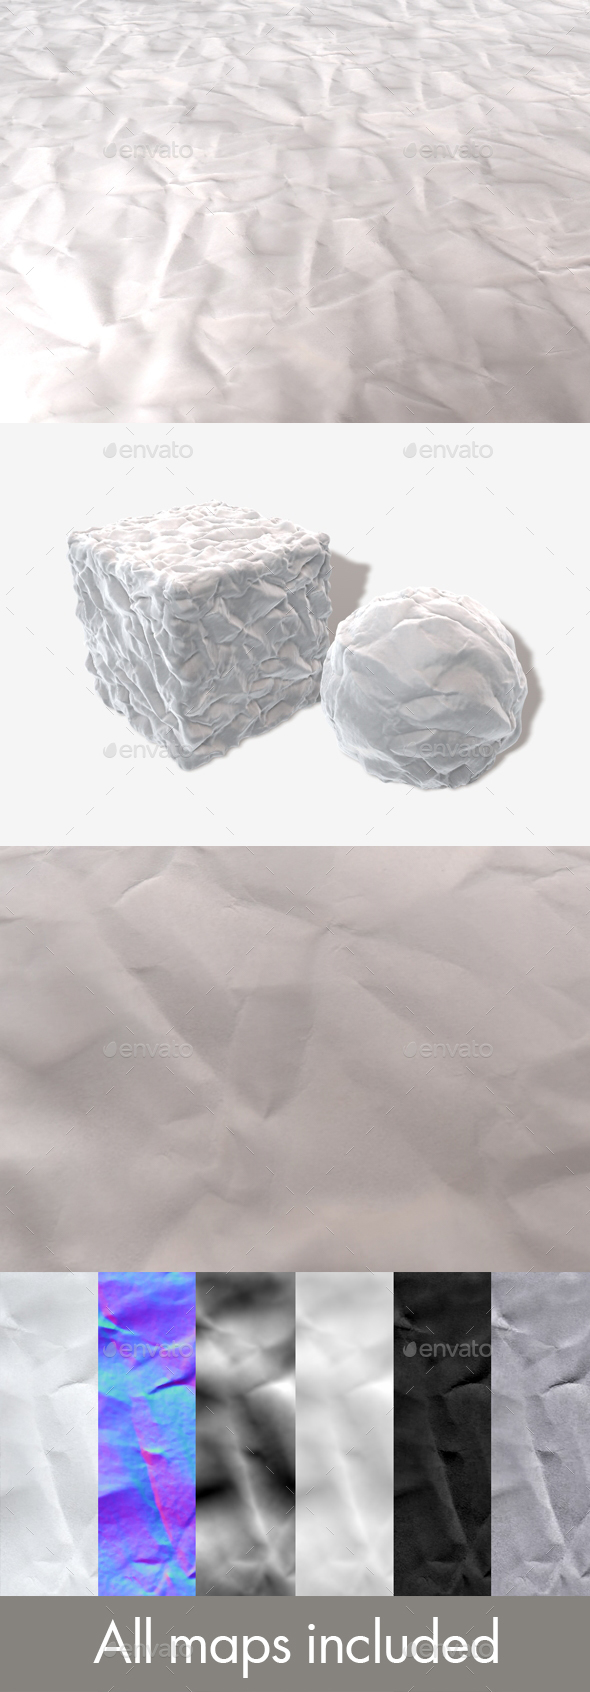 Crumpled Paper Seamless Texture - 3DOcean Item for Sale